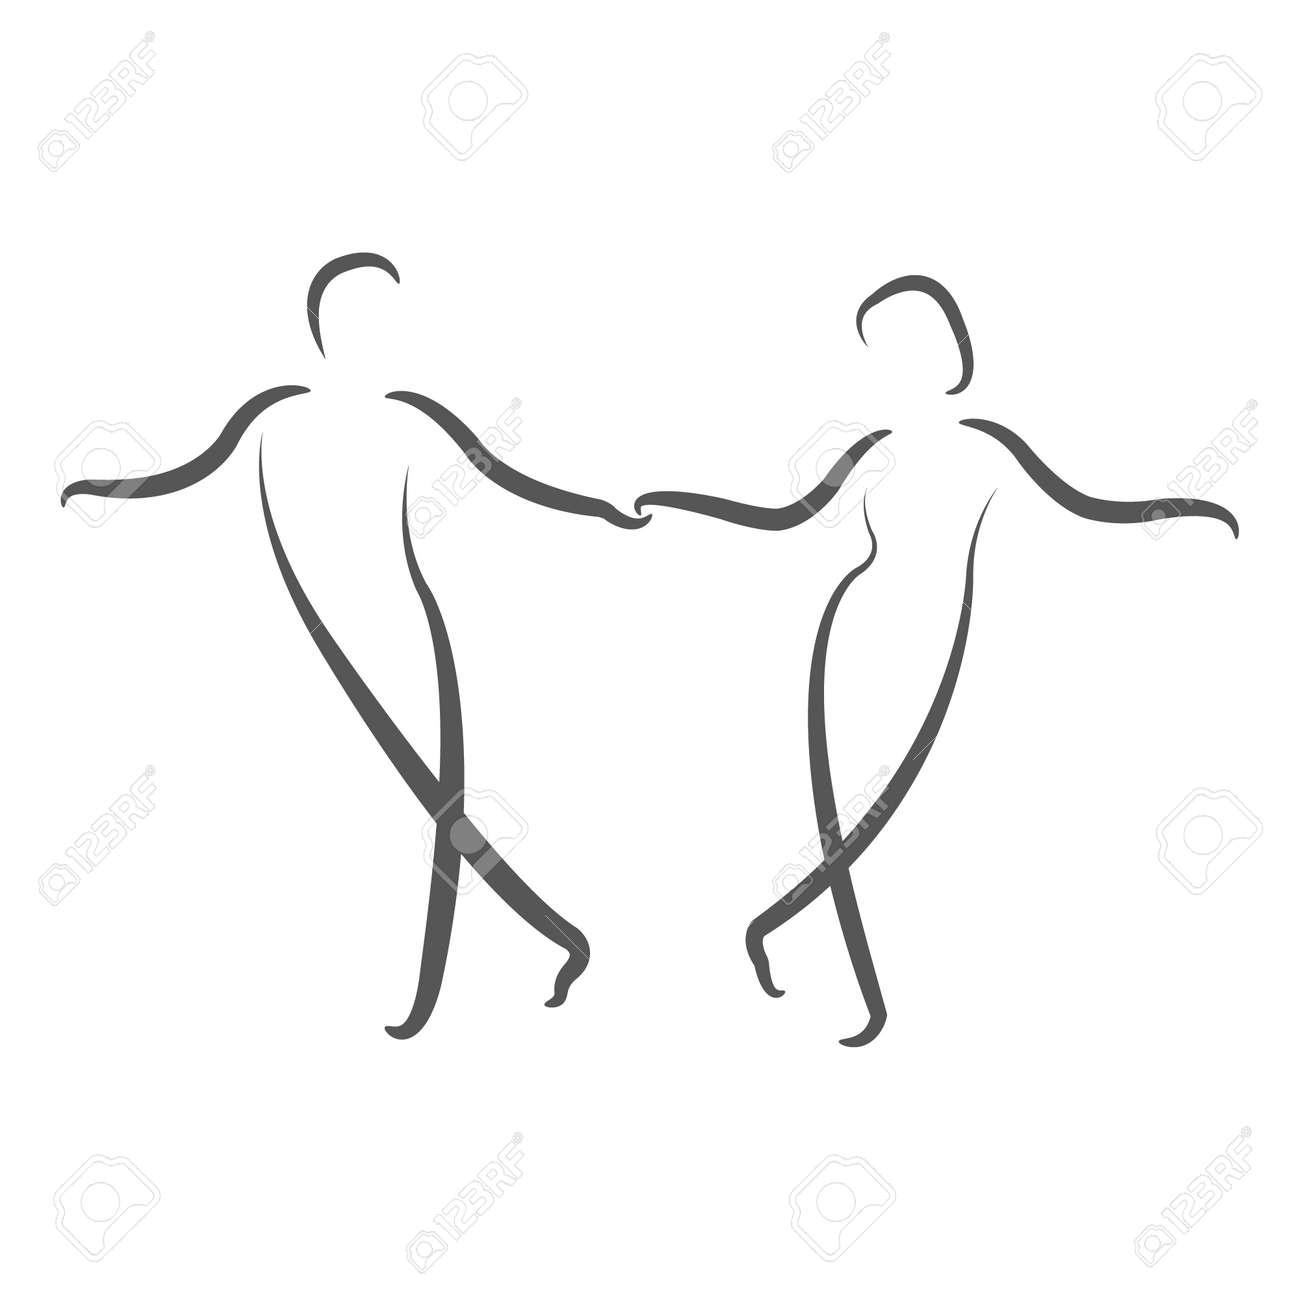 dancing couple logo swing dance design template for label banner or postcard